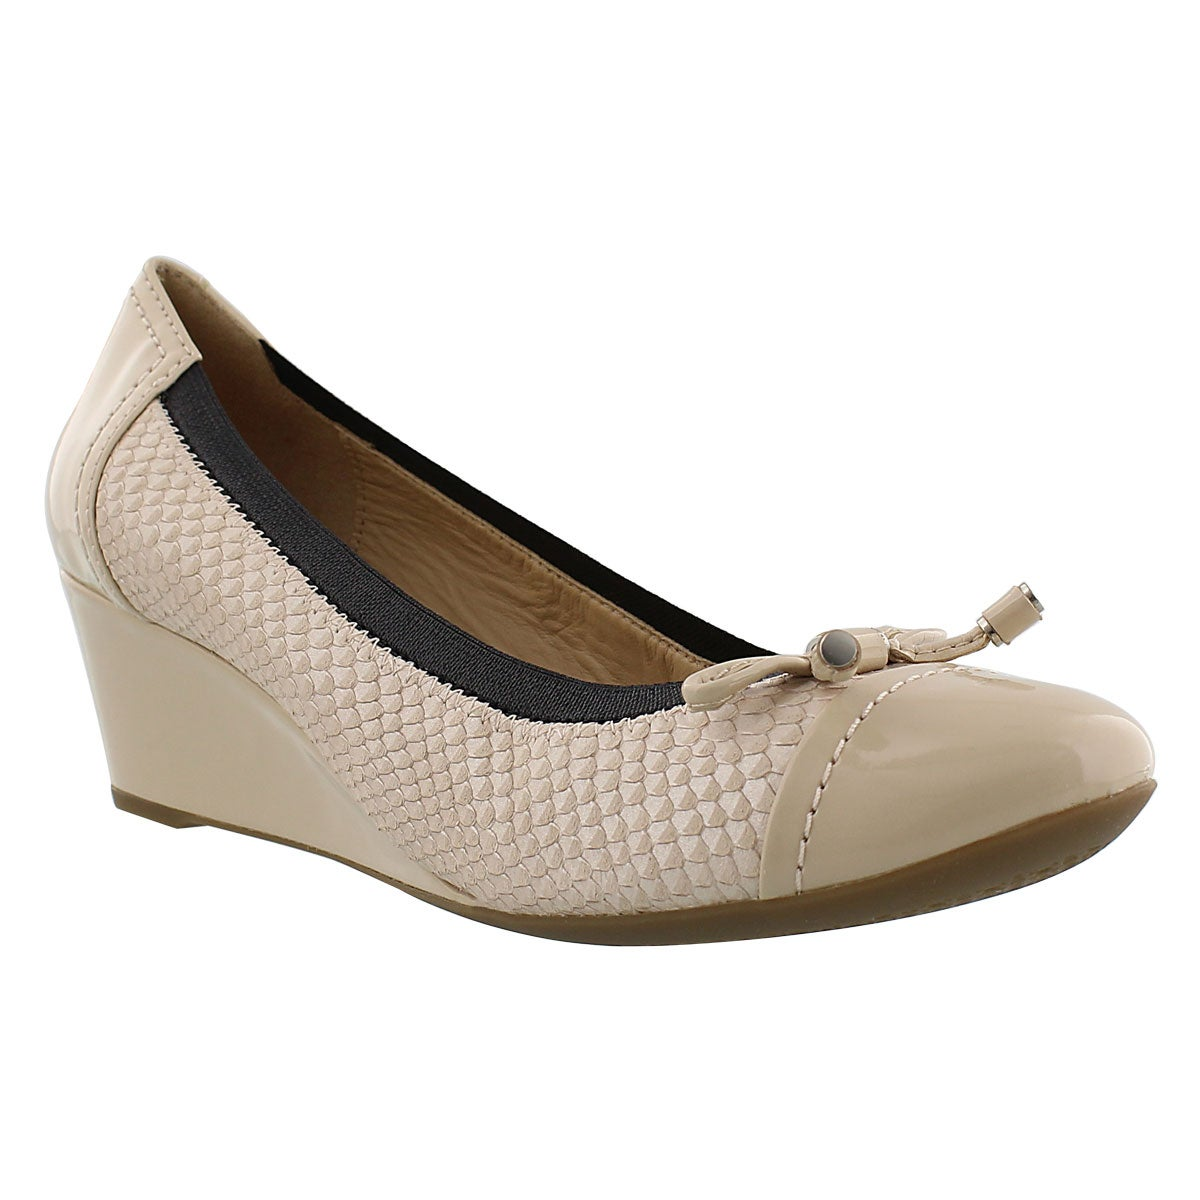 Lds Floralie skin dress wedge